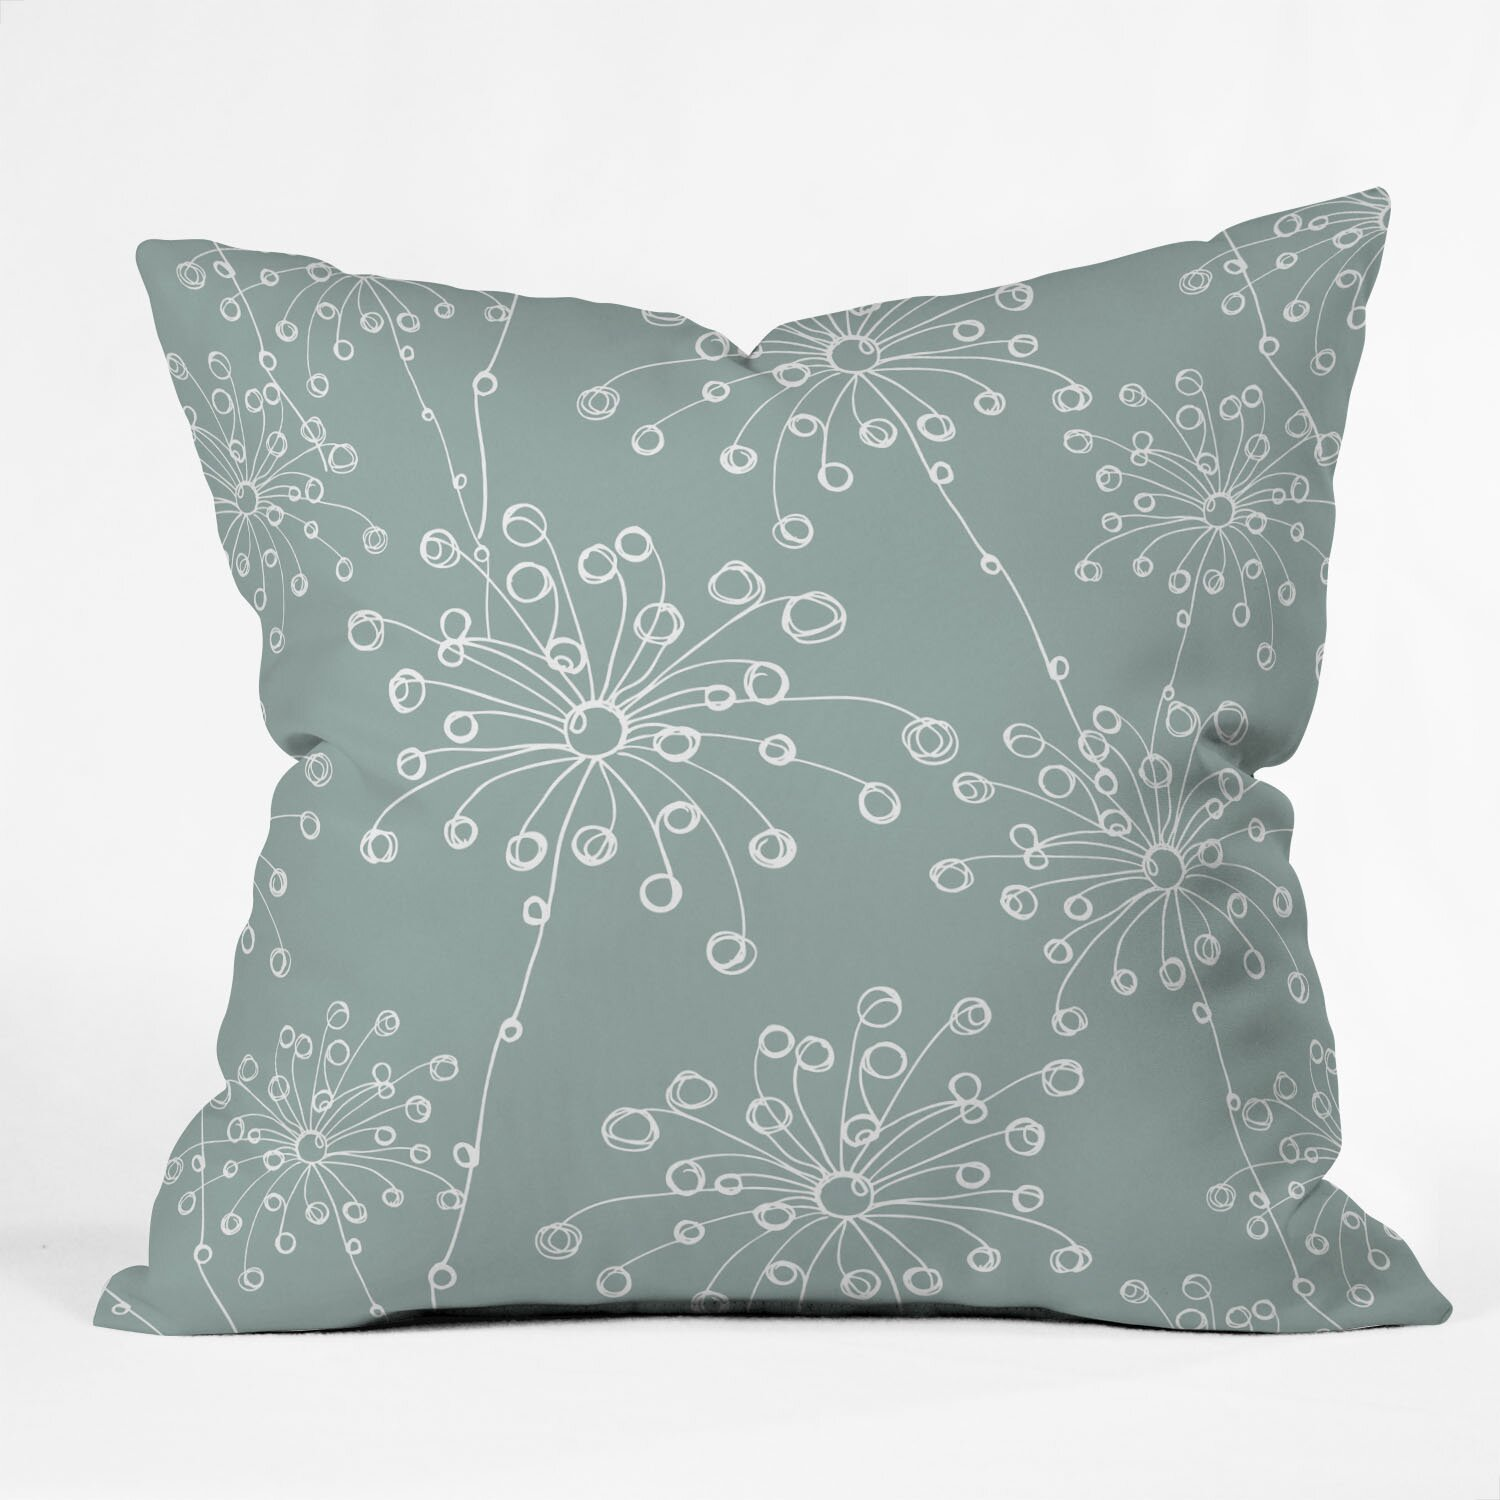 Quirky Throw Pillow : DENY Designs Rachael Taylor Quirky Motifs Throw Pillow & Reviews Wayfair